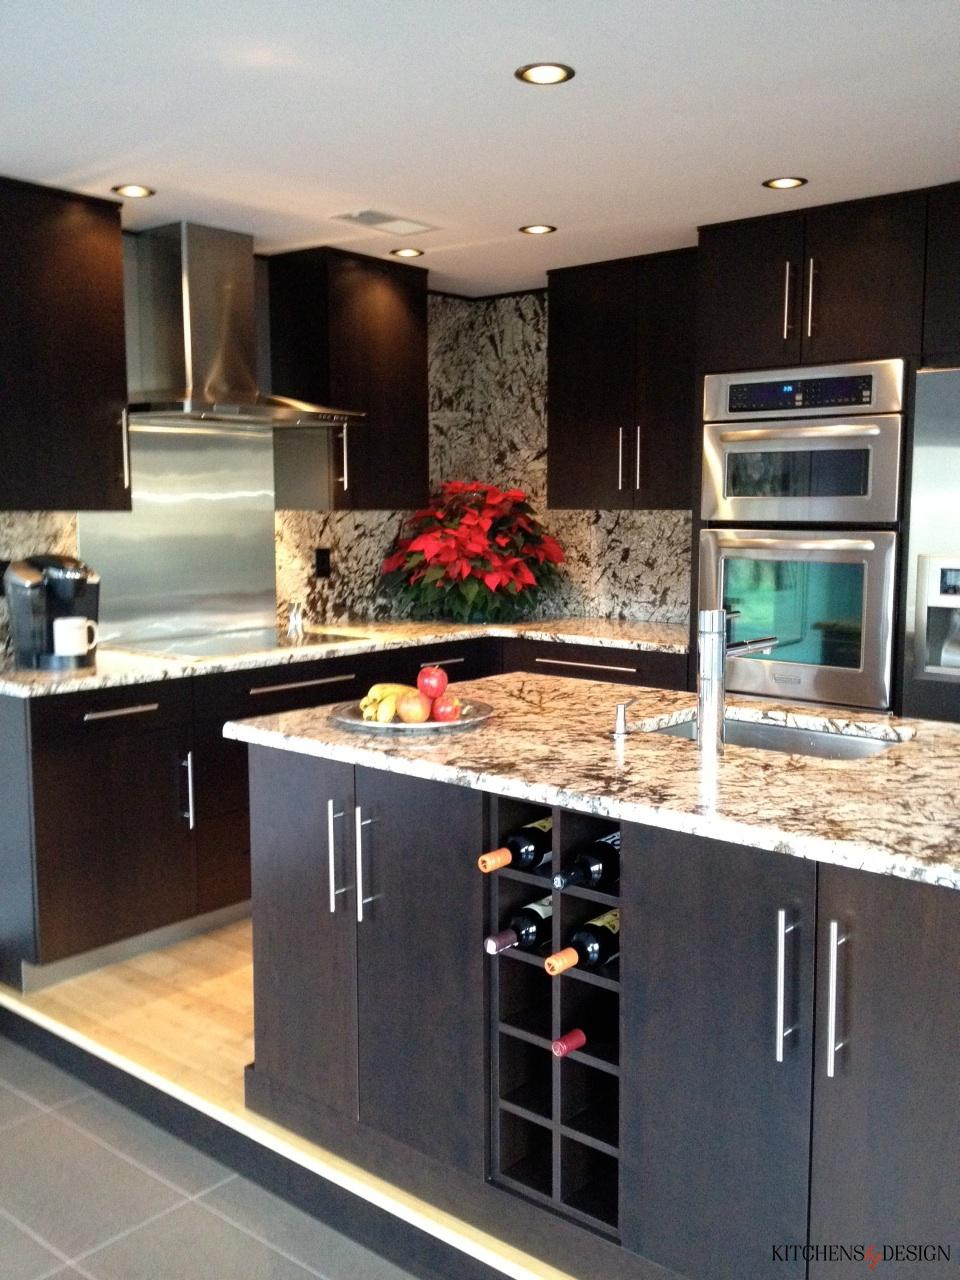 large kitchen with dark cabinetry and built-in wine rack